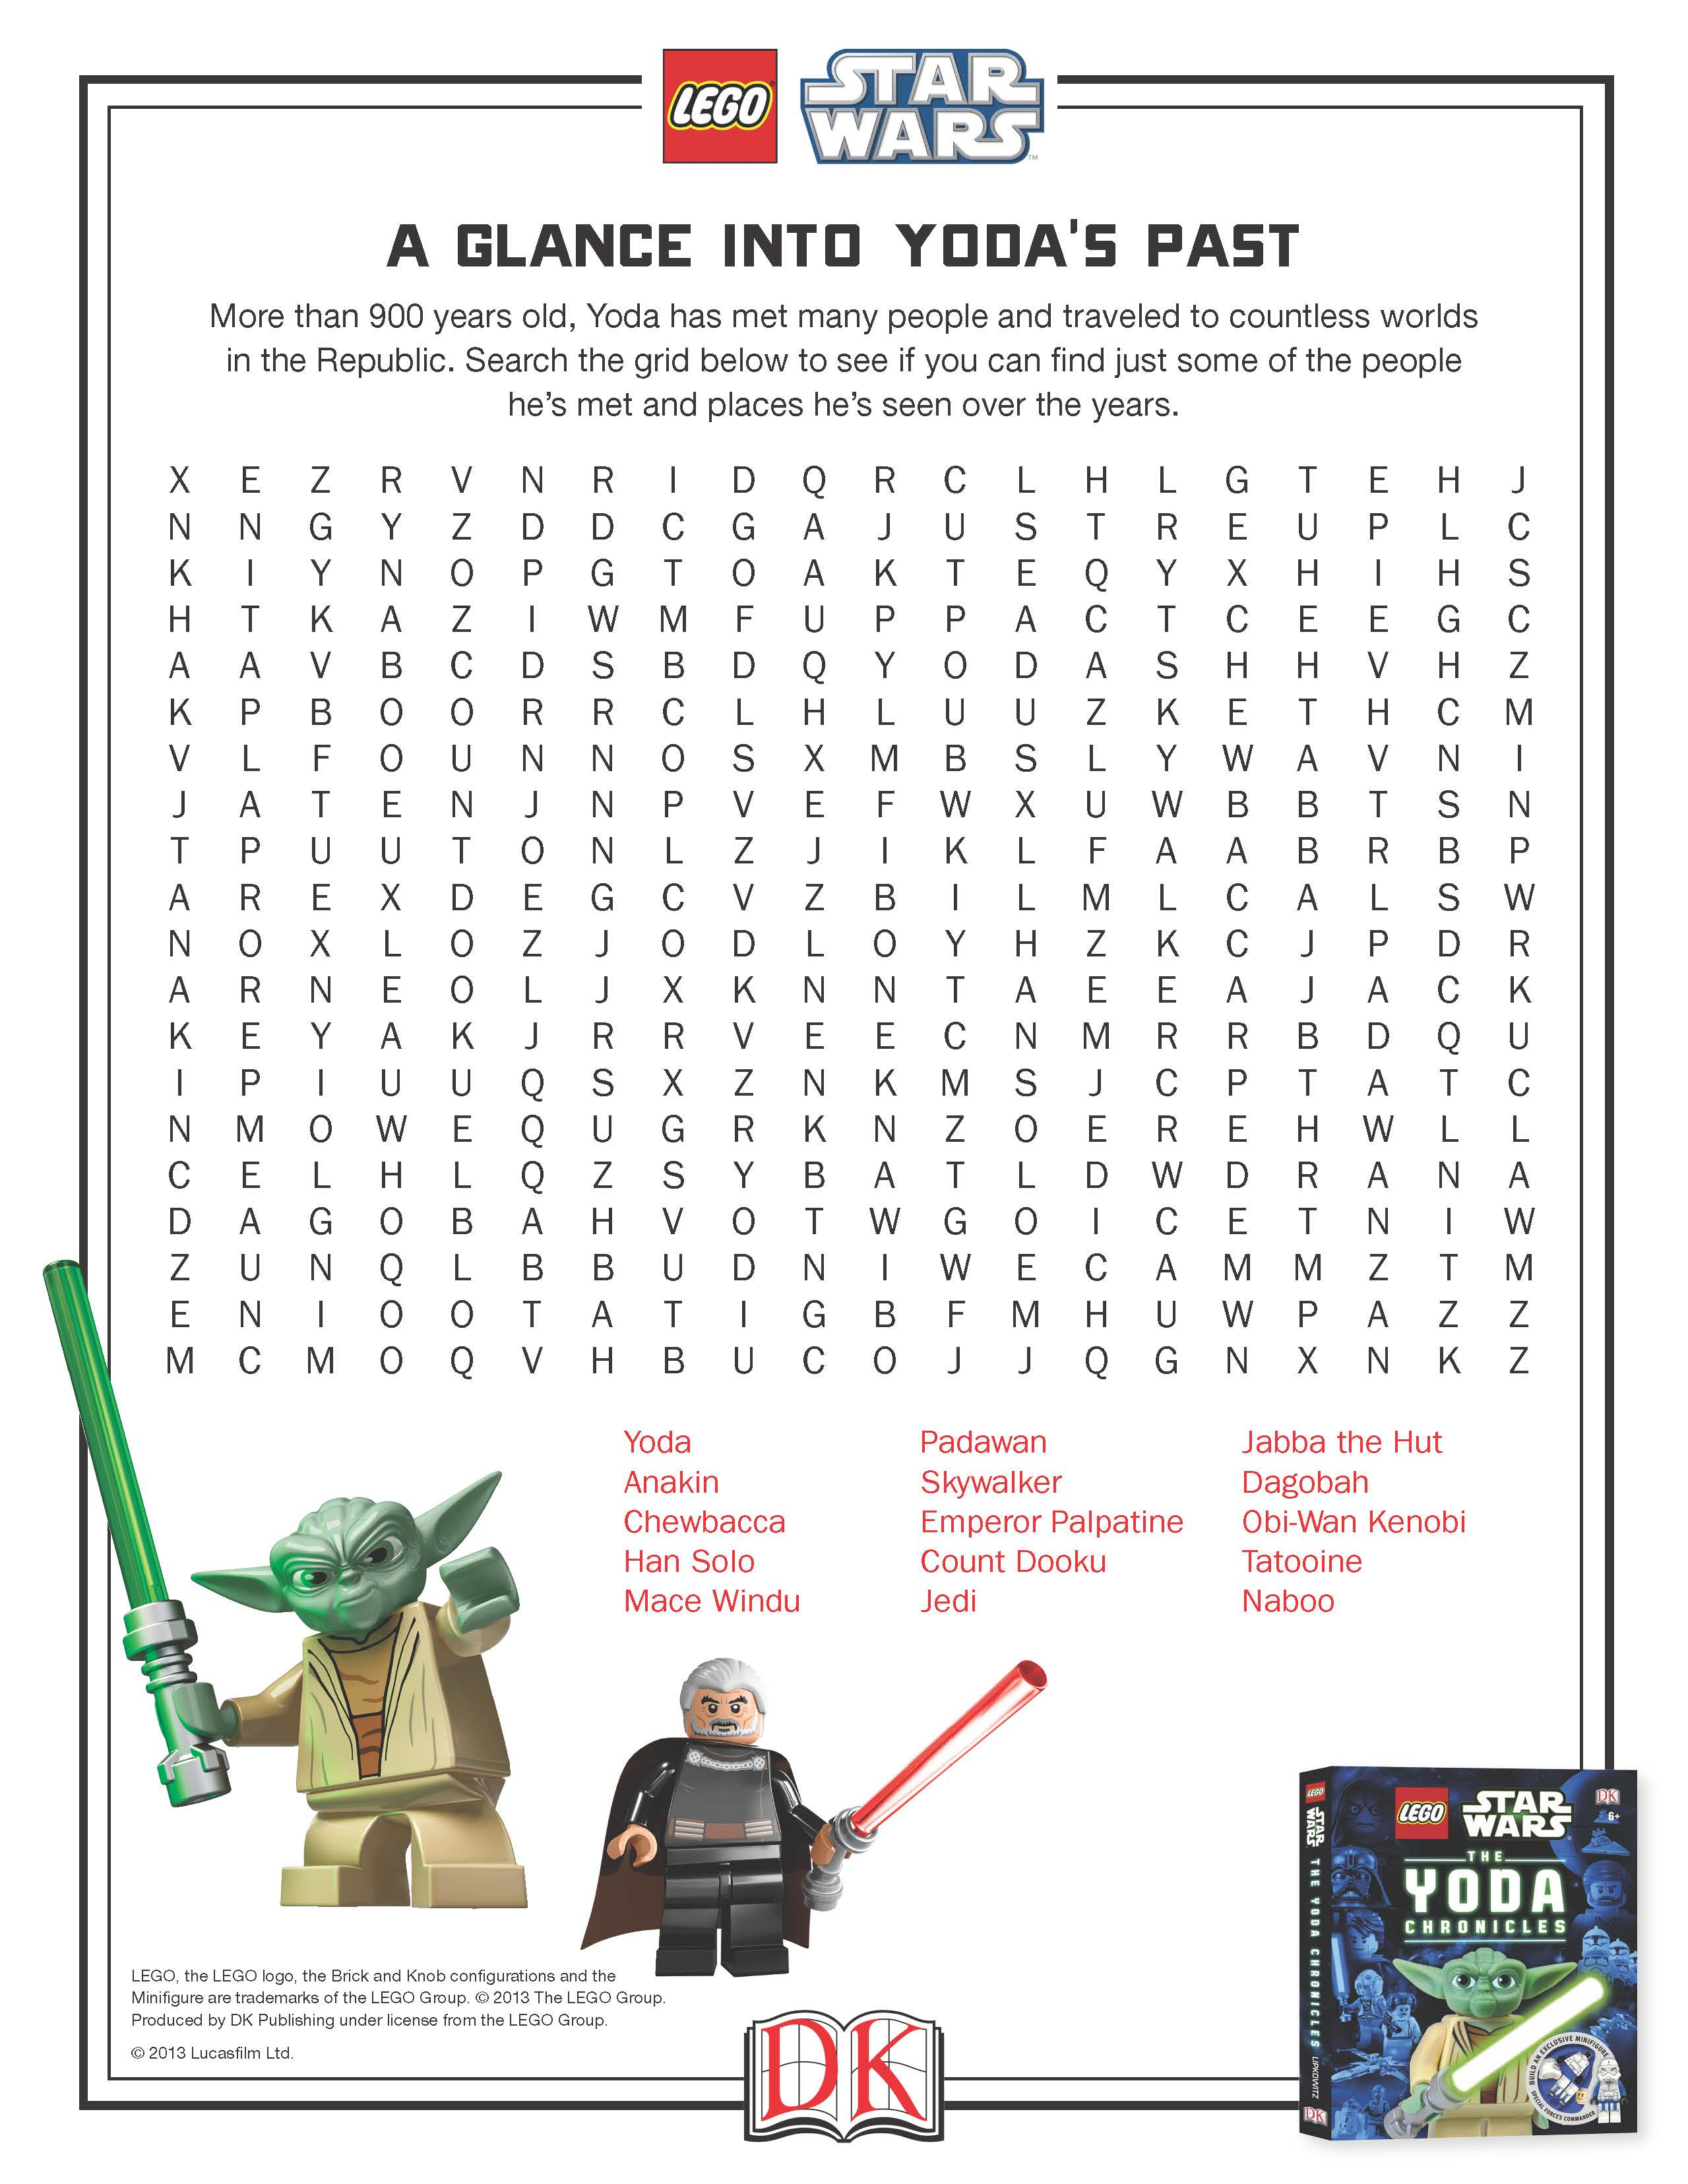 Star Wars Printables And Activities | Brightly - Star Wars Crossword Puzzle Printable